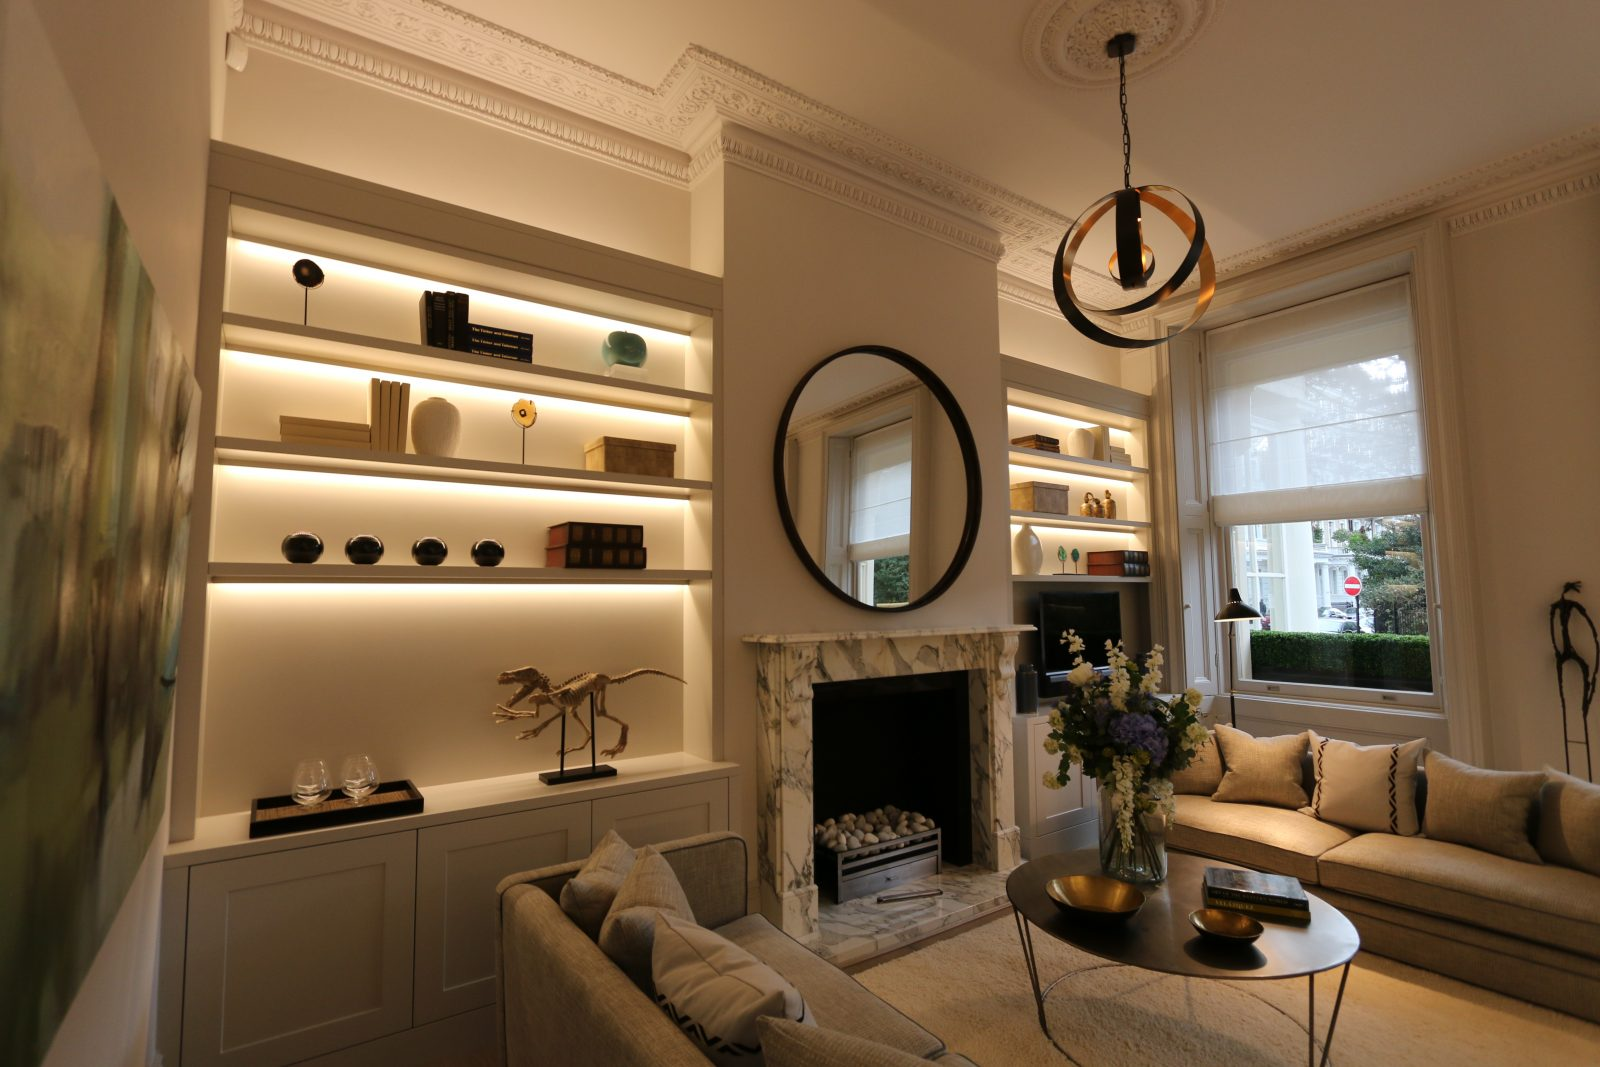 Kensington Apartment - CTS Systems